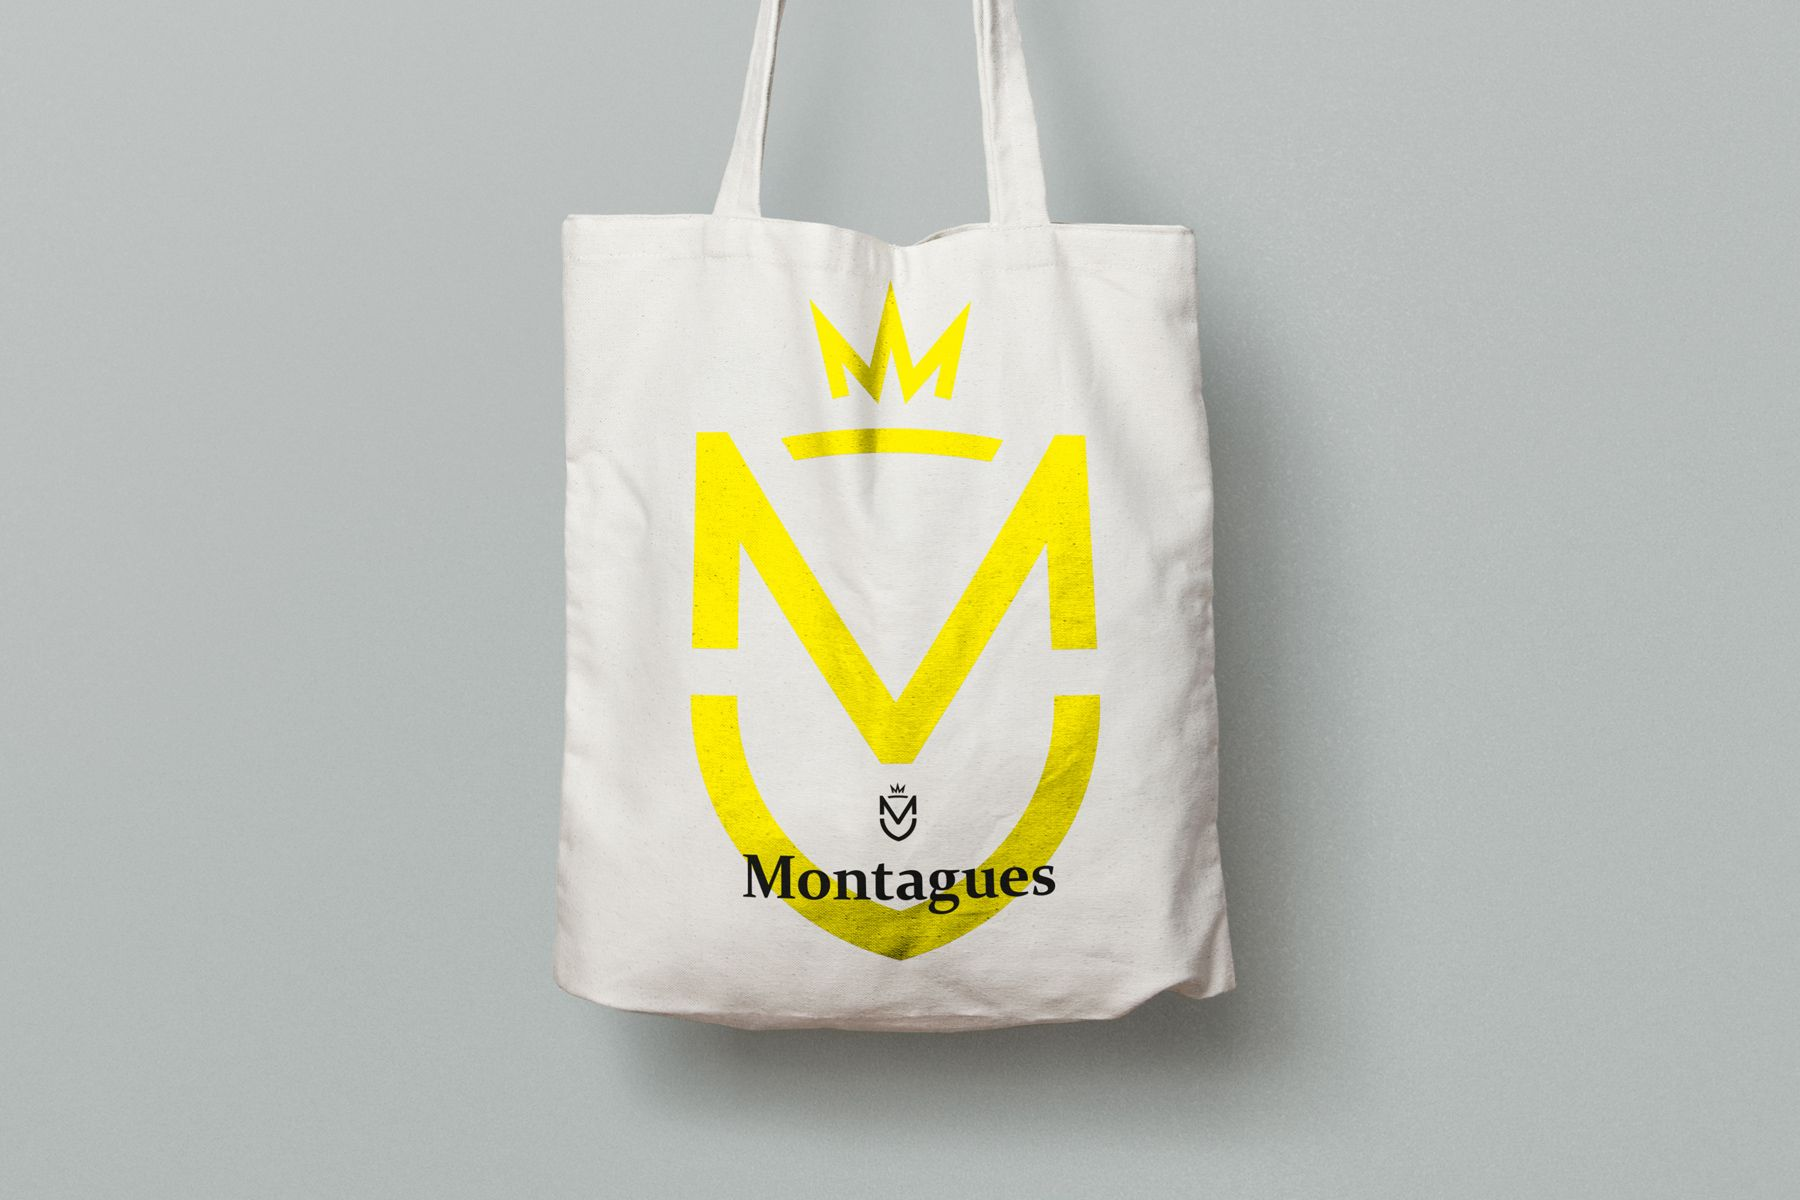 Montagues_tote-1800x1200